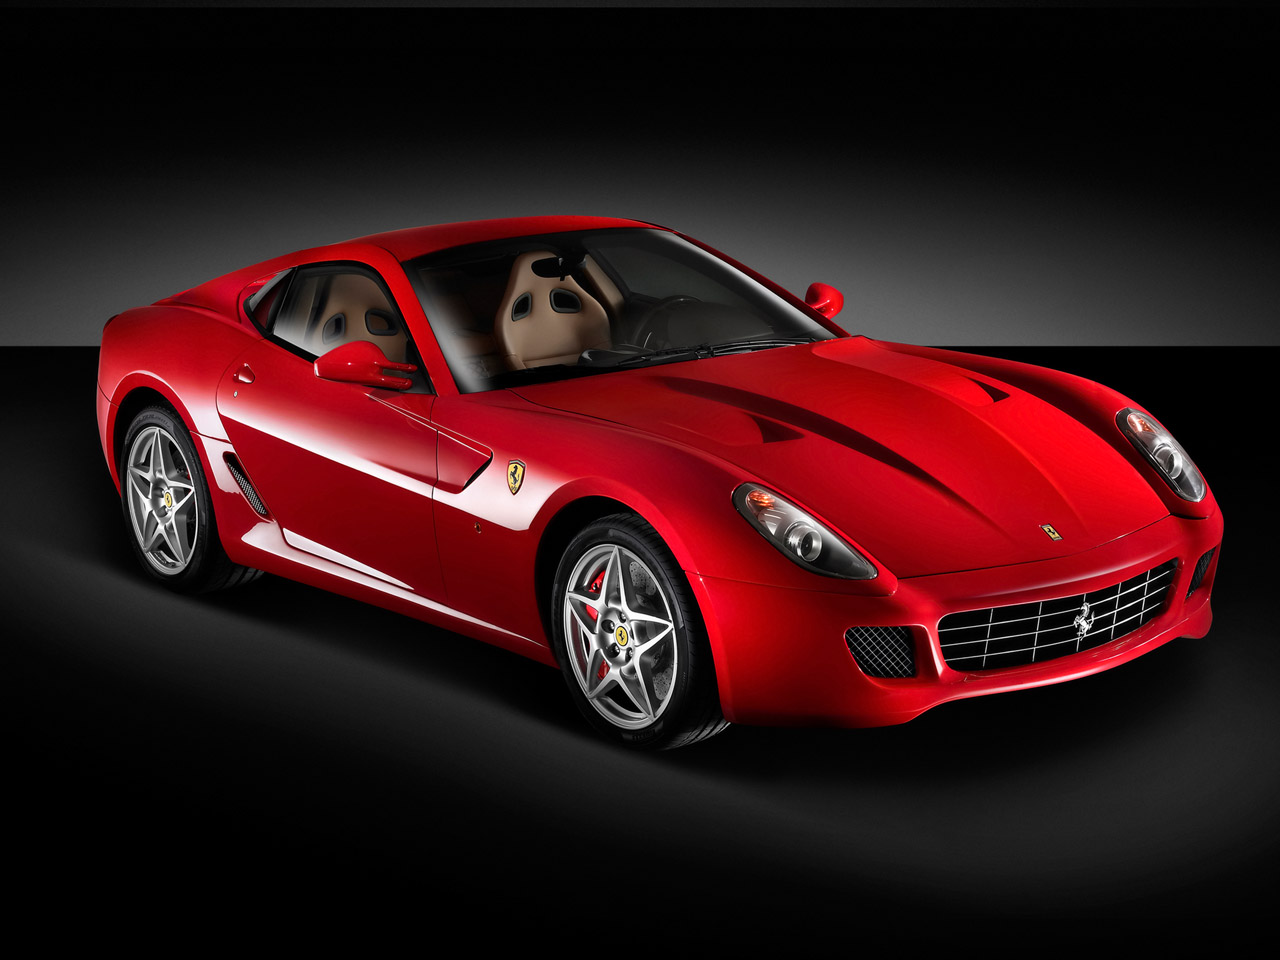 ferrari 599 gtb picture 30844 ferrari photo gallery. Black Bedroom Furniture Sets. Home Design Ideas